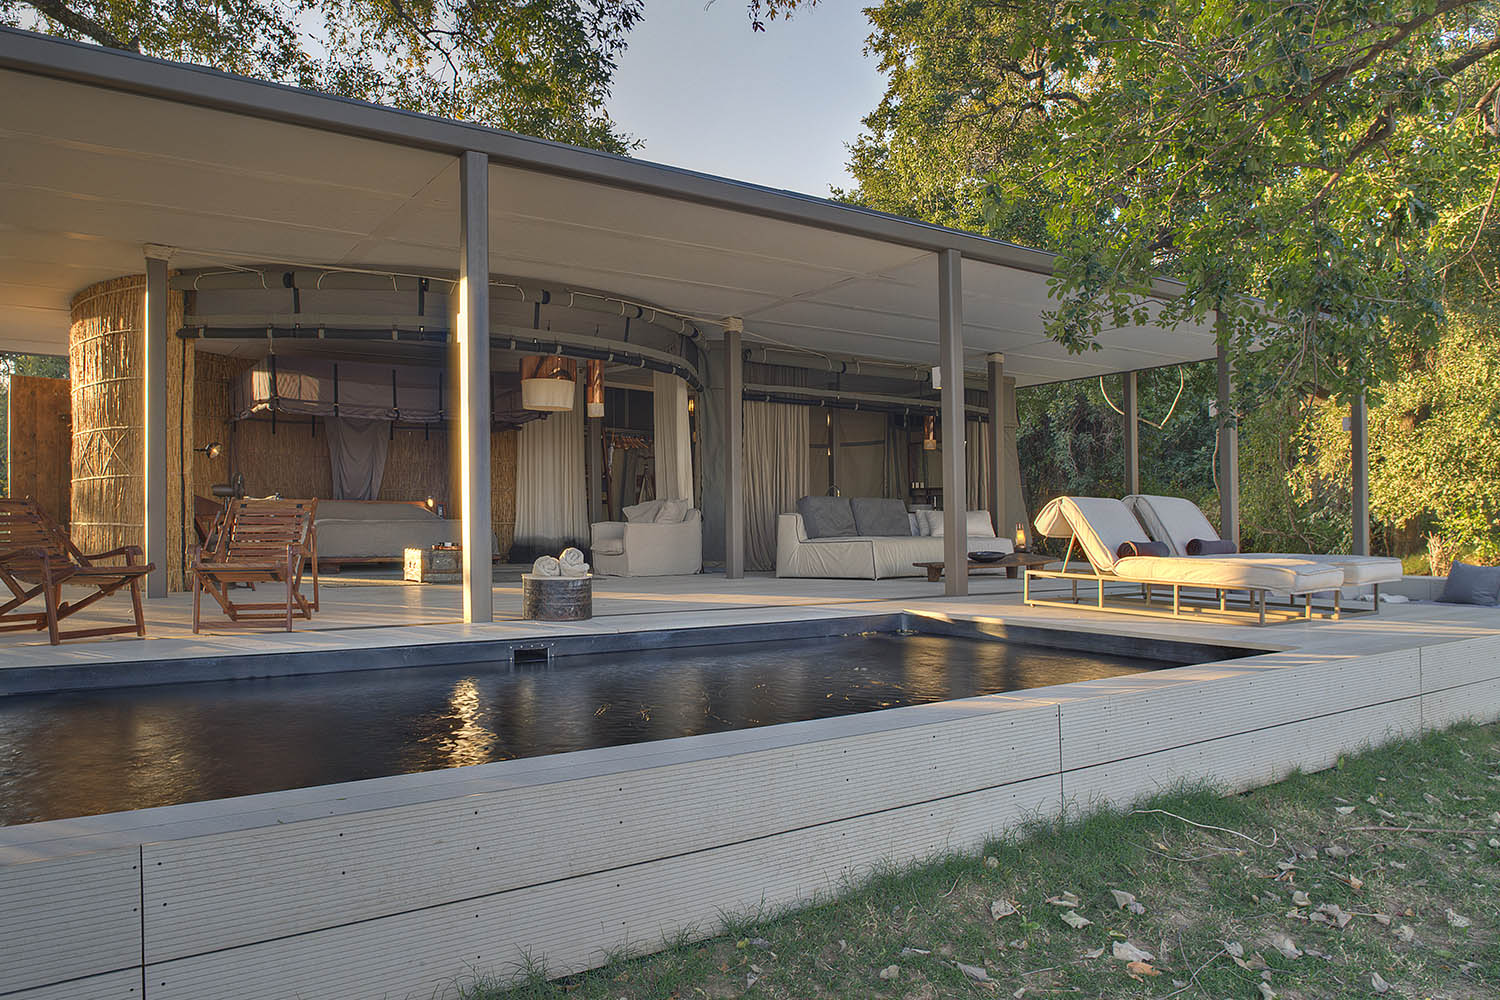 chinzombo-glamourous-lodge-zambia-in-style-tours-safari-packages-lodges-exploring-south-luangwa-national-park-pool-deck-exterior